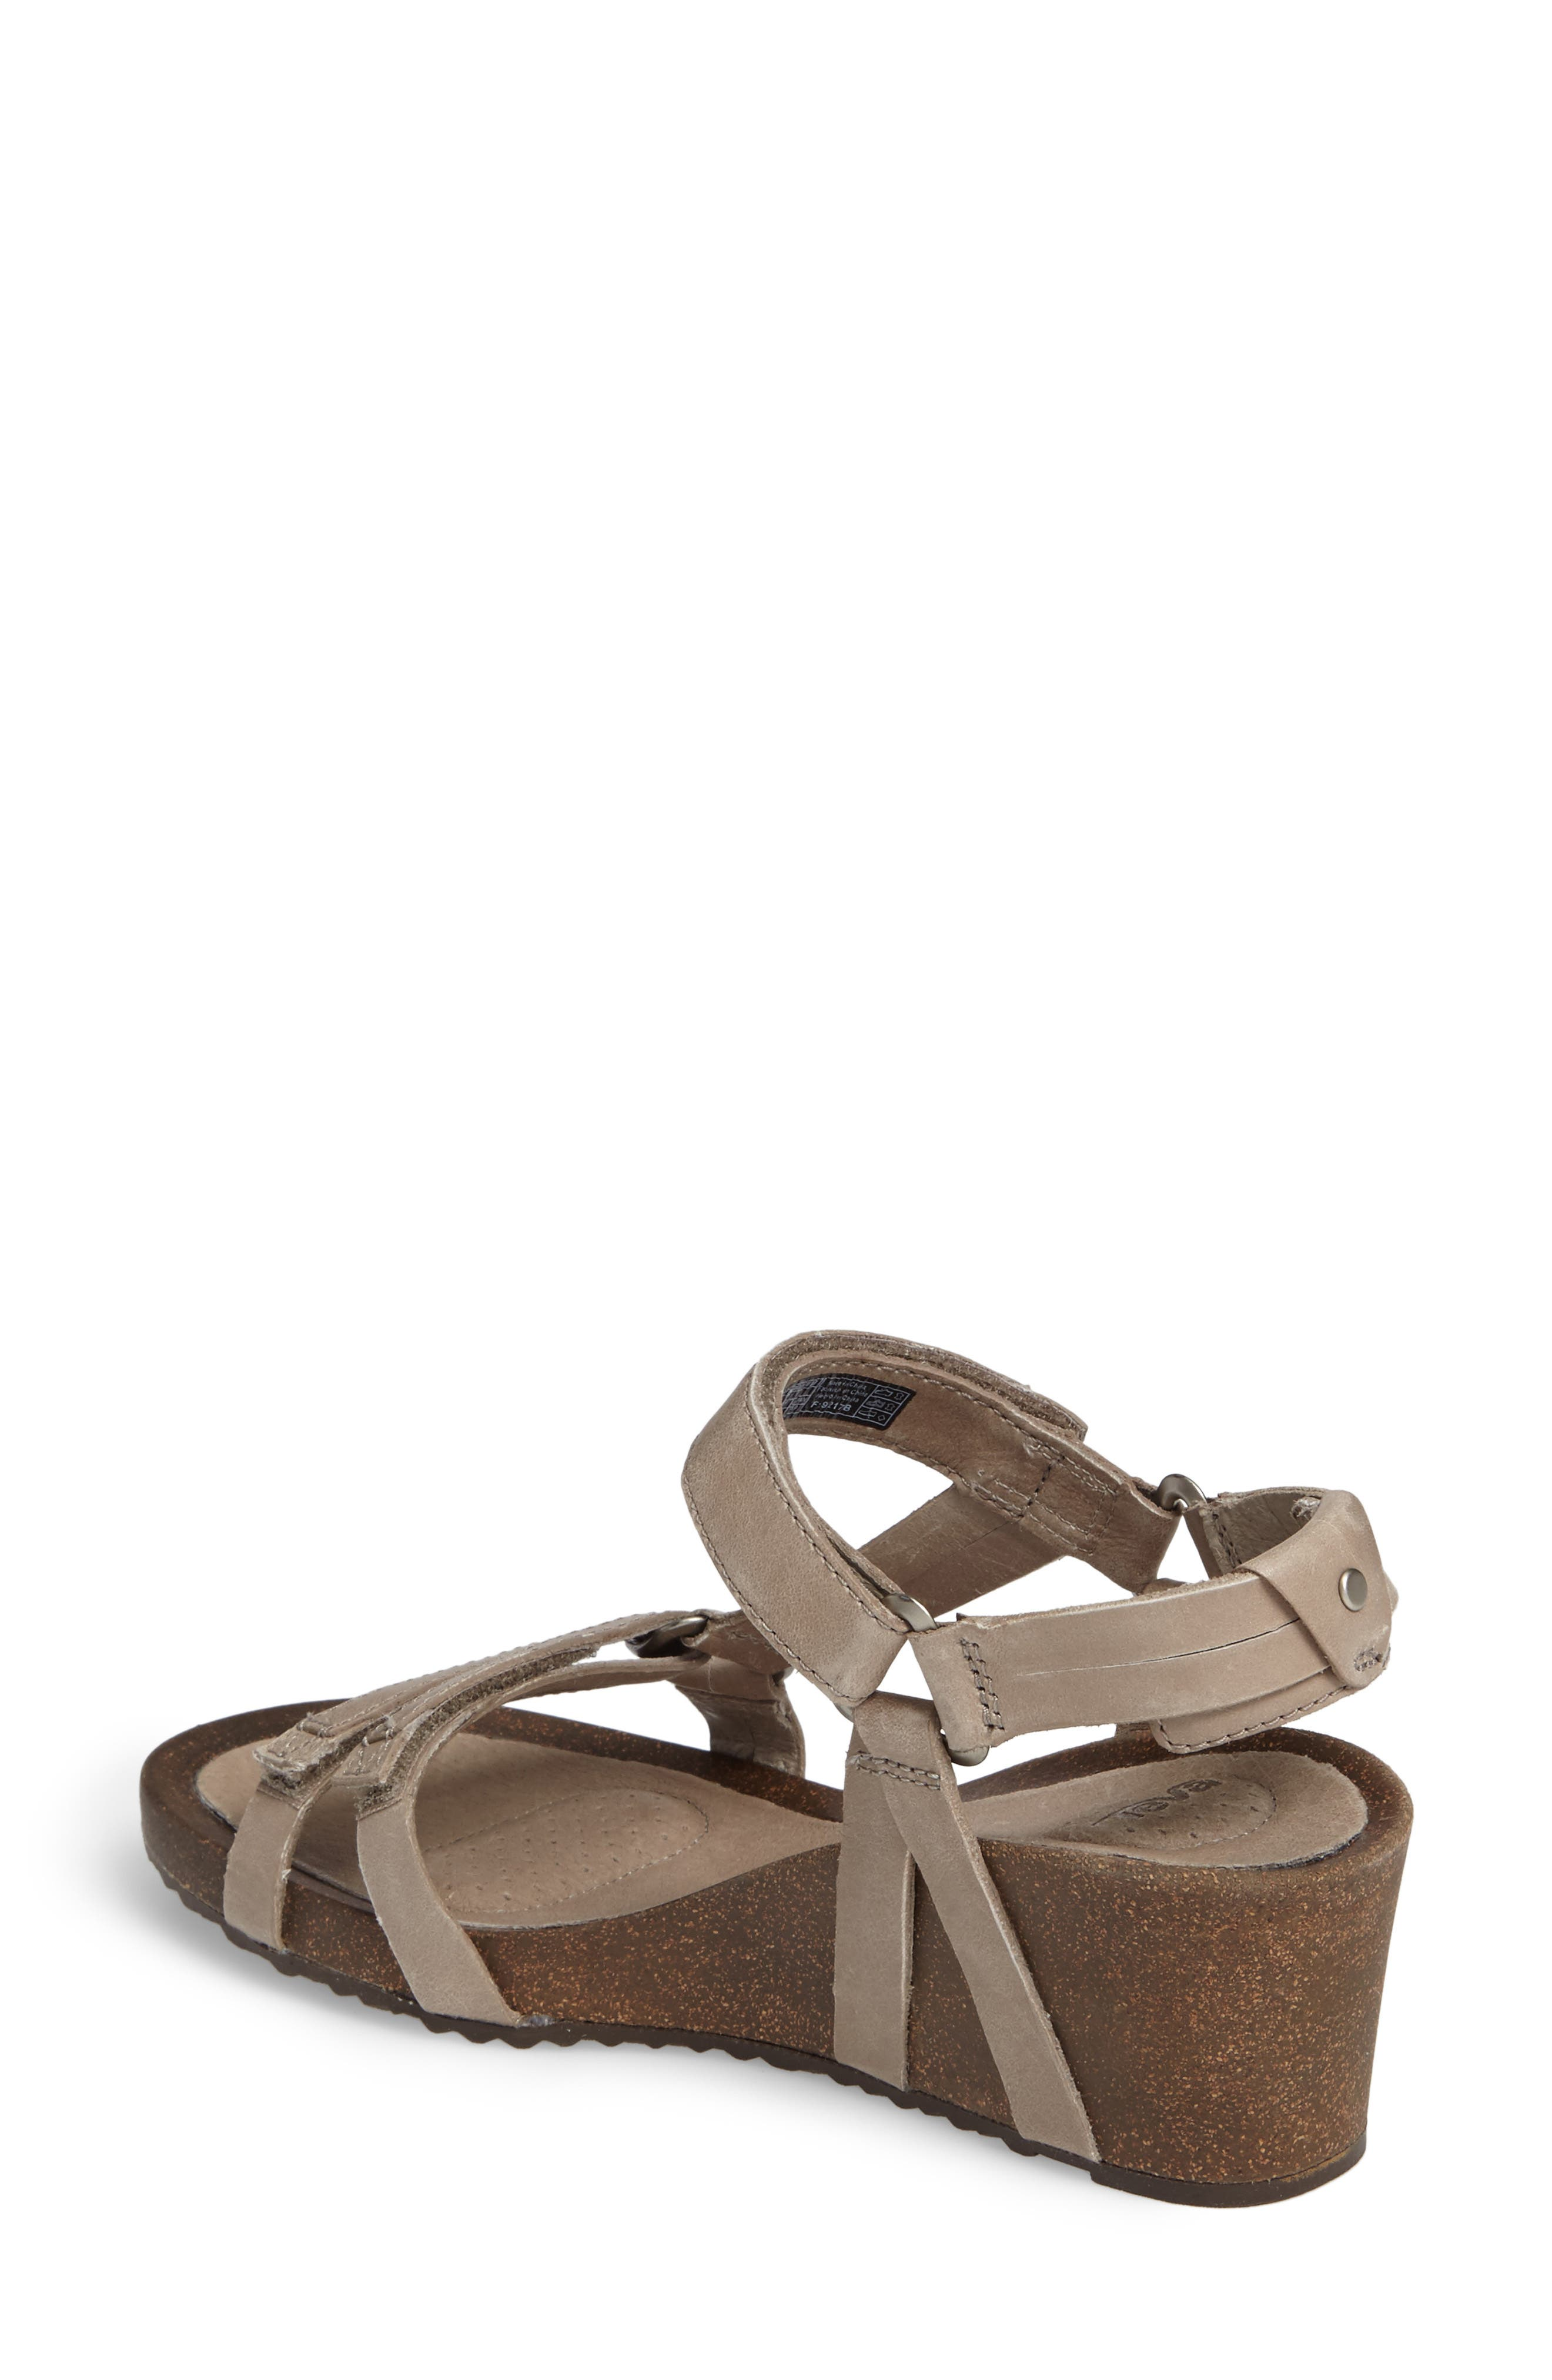 Ysidro Wedge Sandal,                             Alternate thumbnail 2, color,                             Taupe Leather